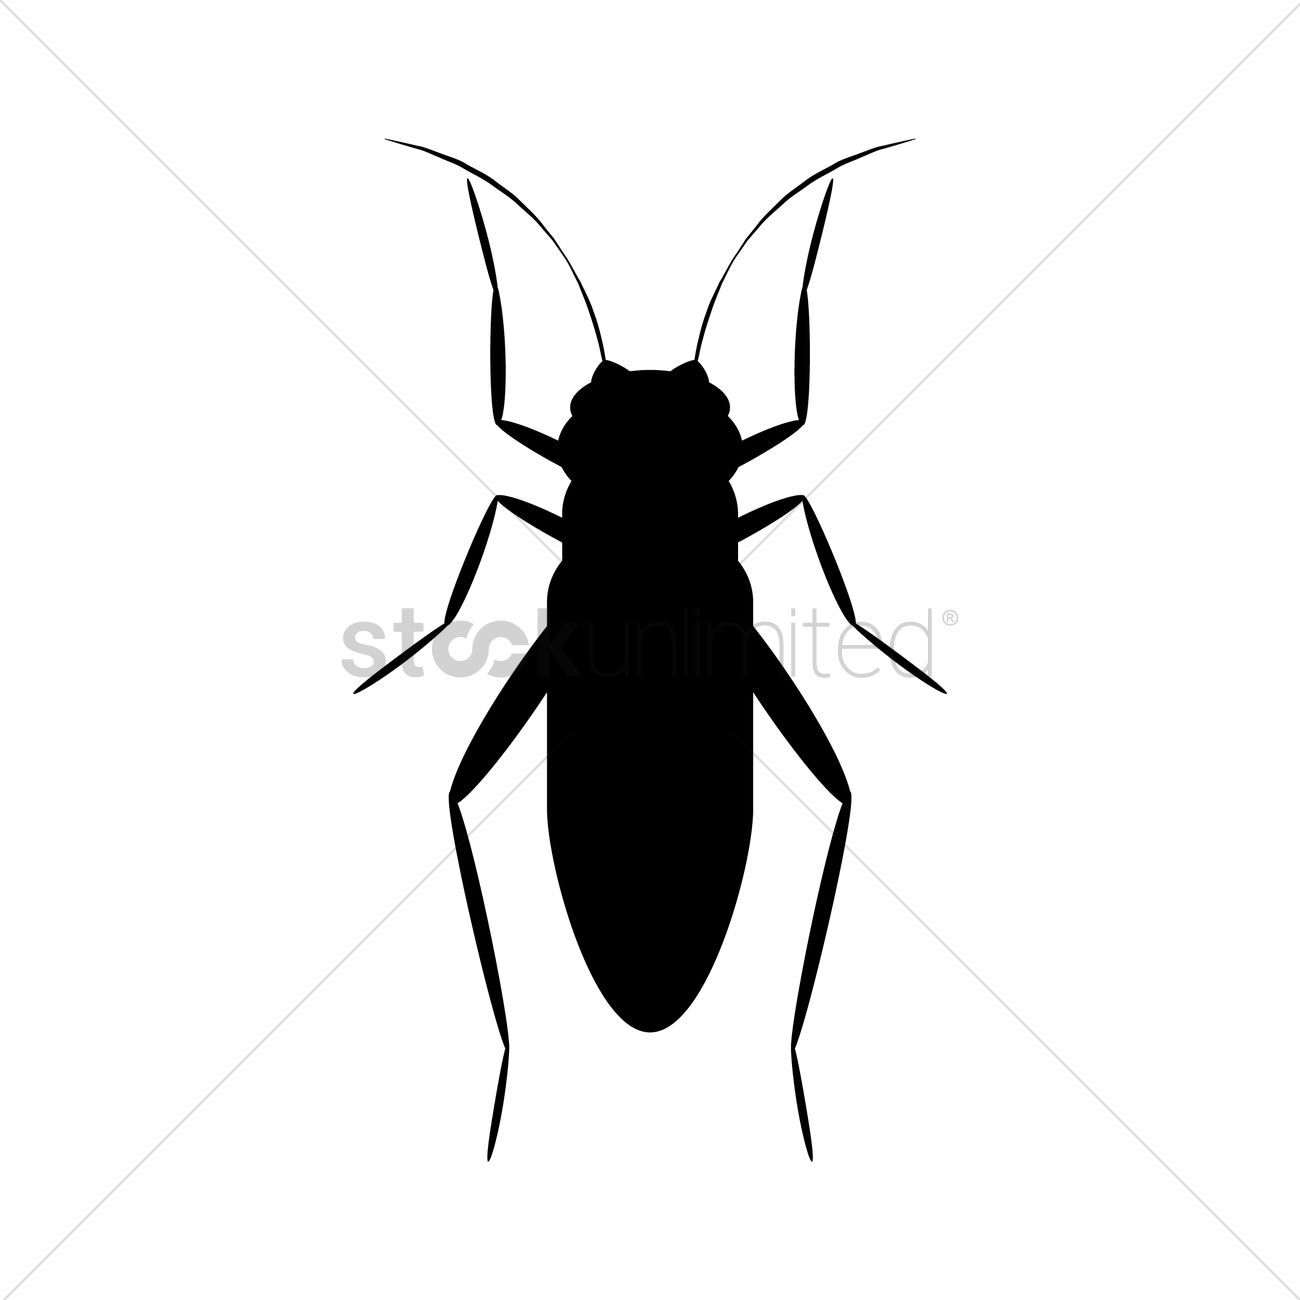 1300x1300 Cricket Silhouette Vector Image